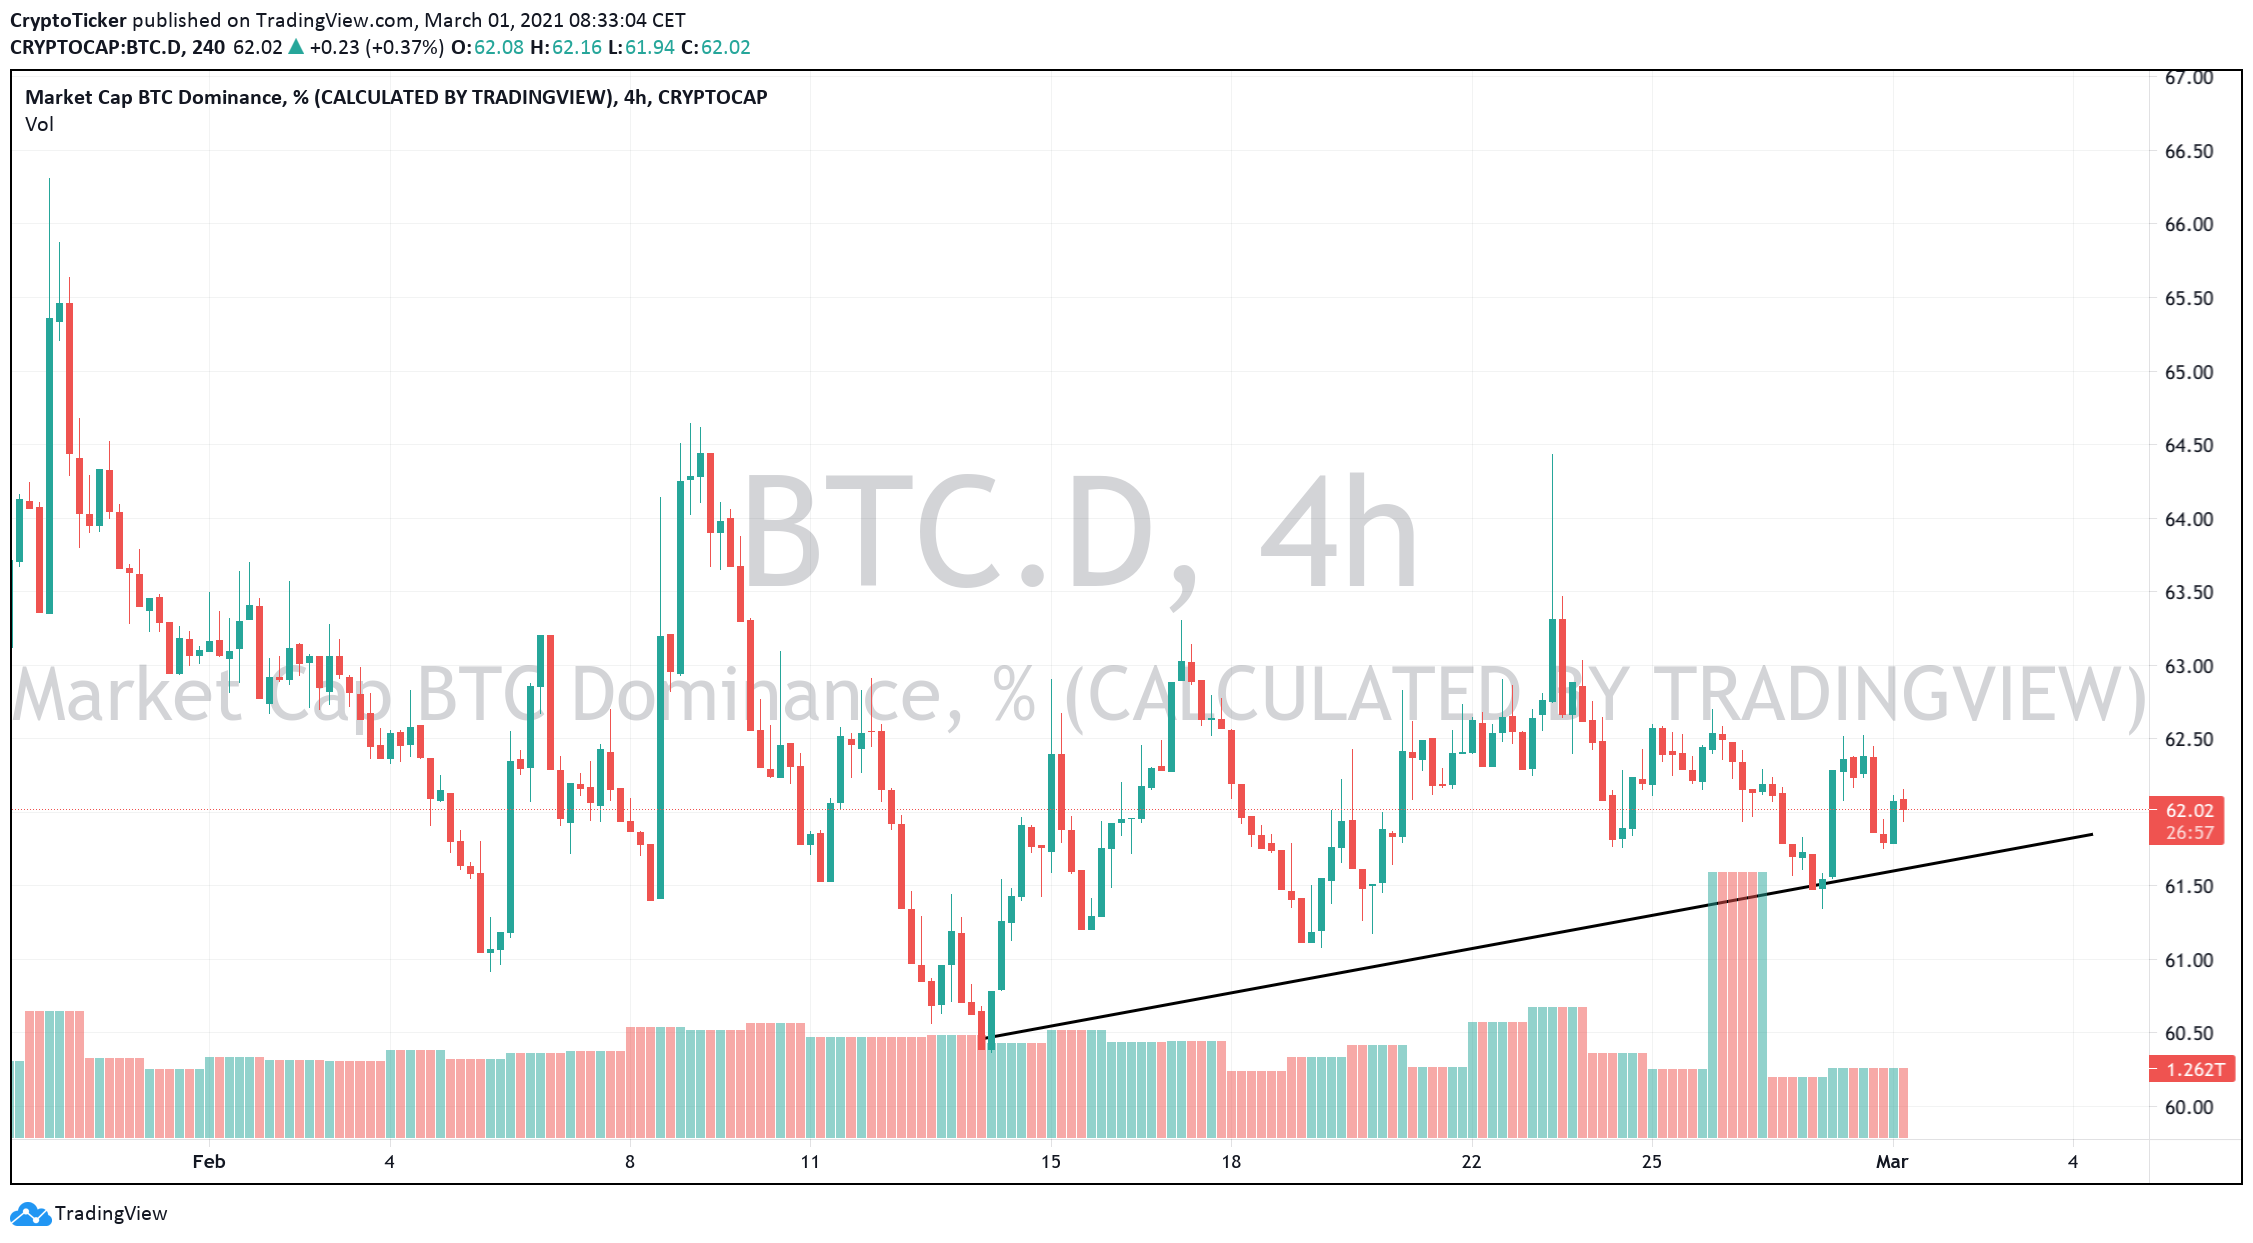 Bitcoin Price Prediction: BTC dominance chart showing its current rise